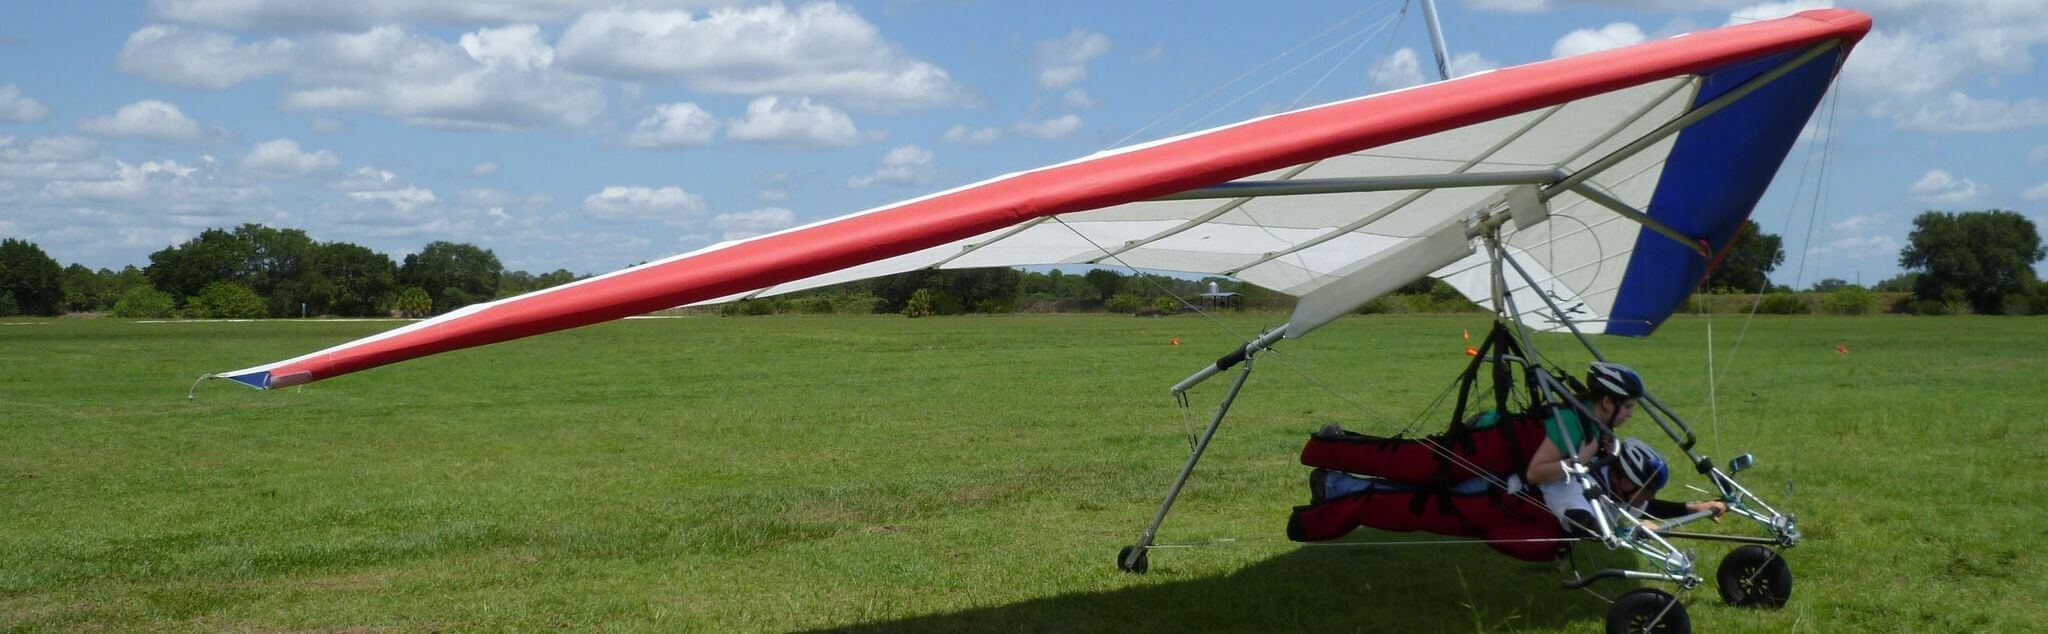 Hang Gliding in United Kingdom